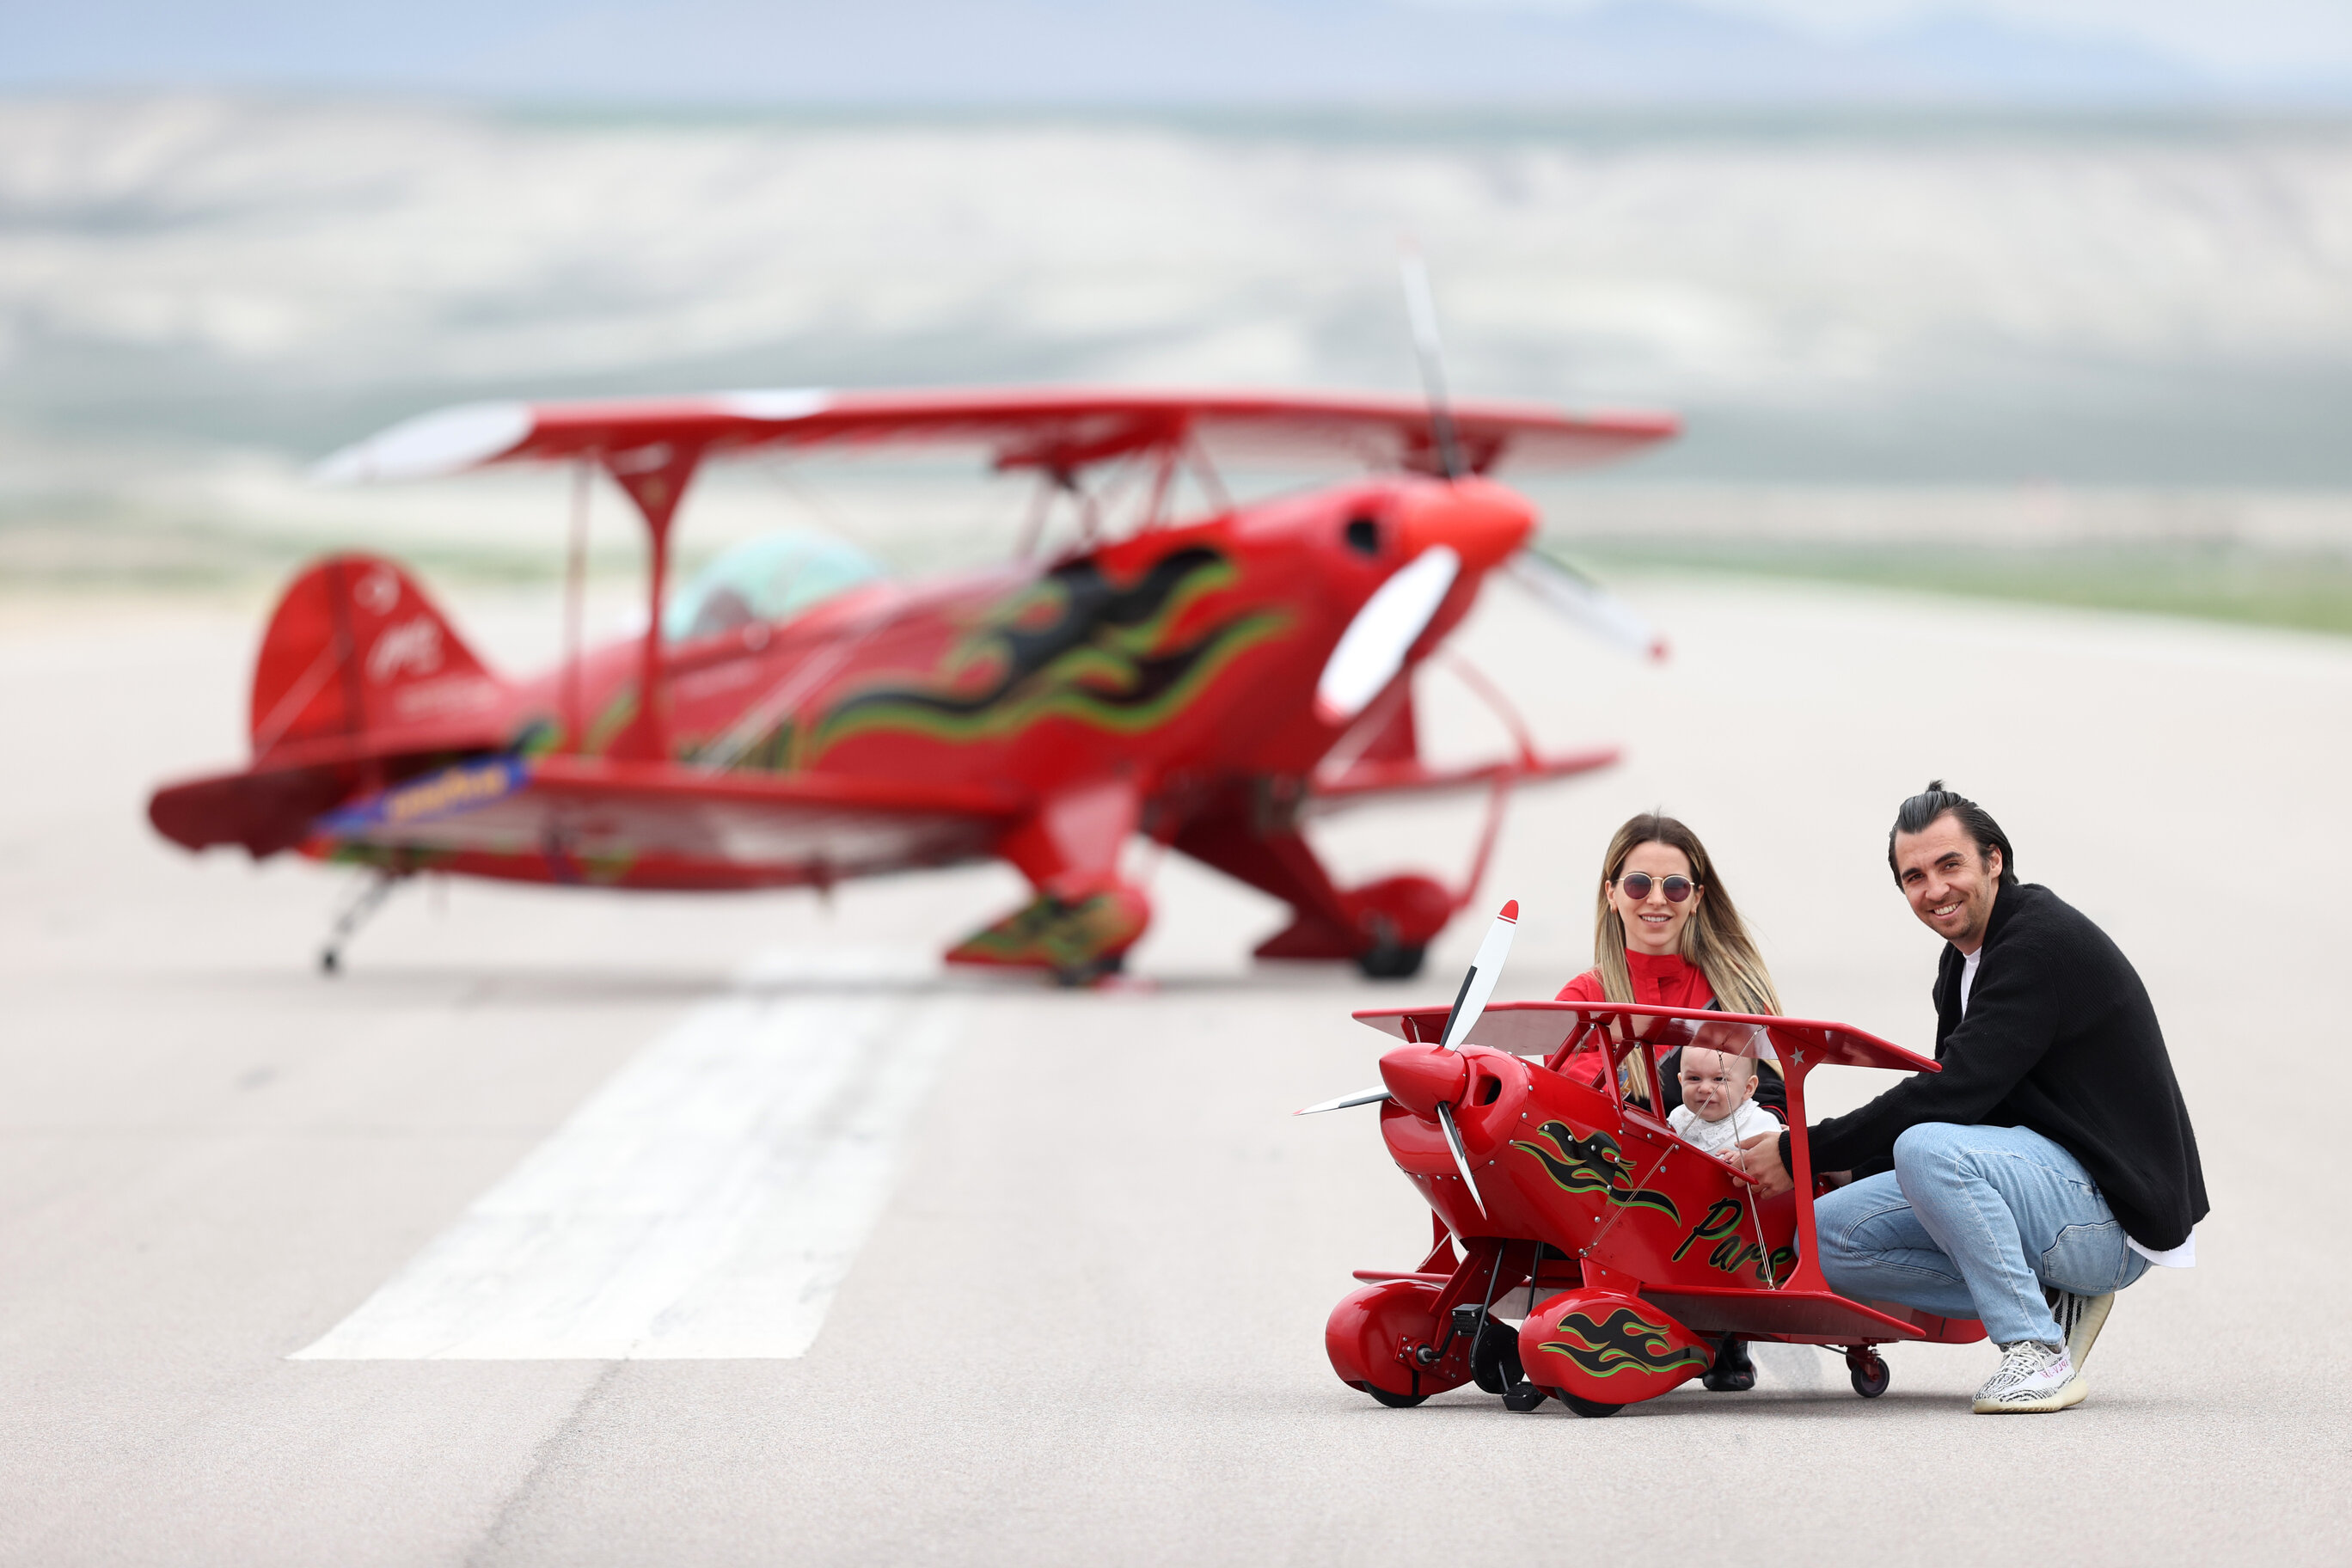 Meet Turkey's only female aerobatic pilot as she shatters glass ceilings